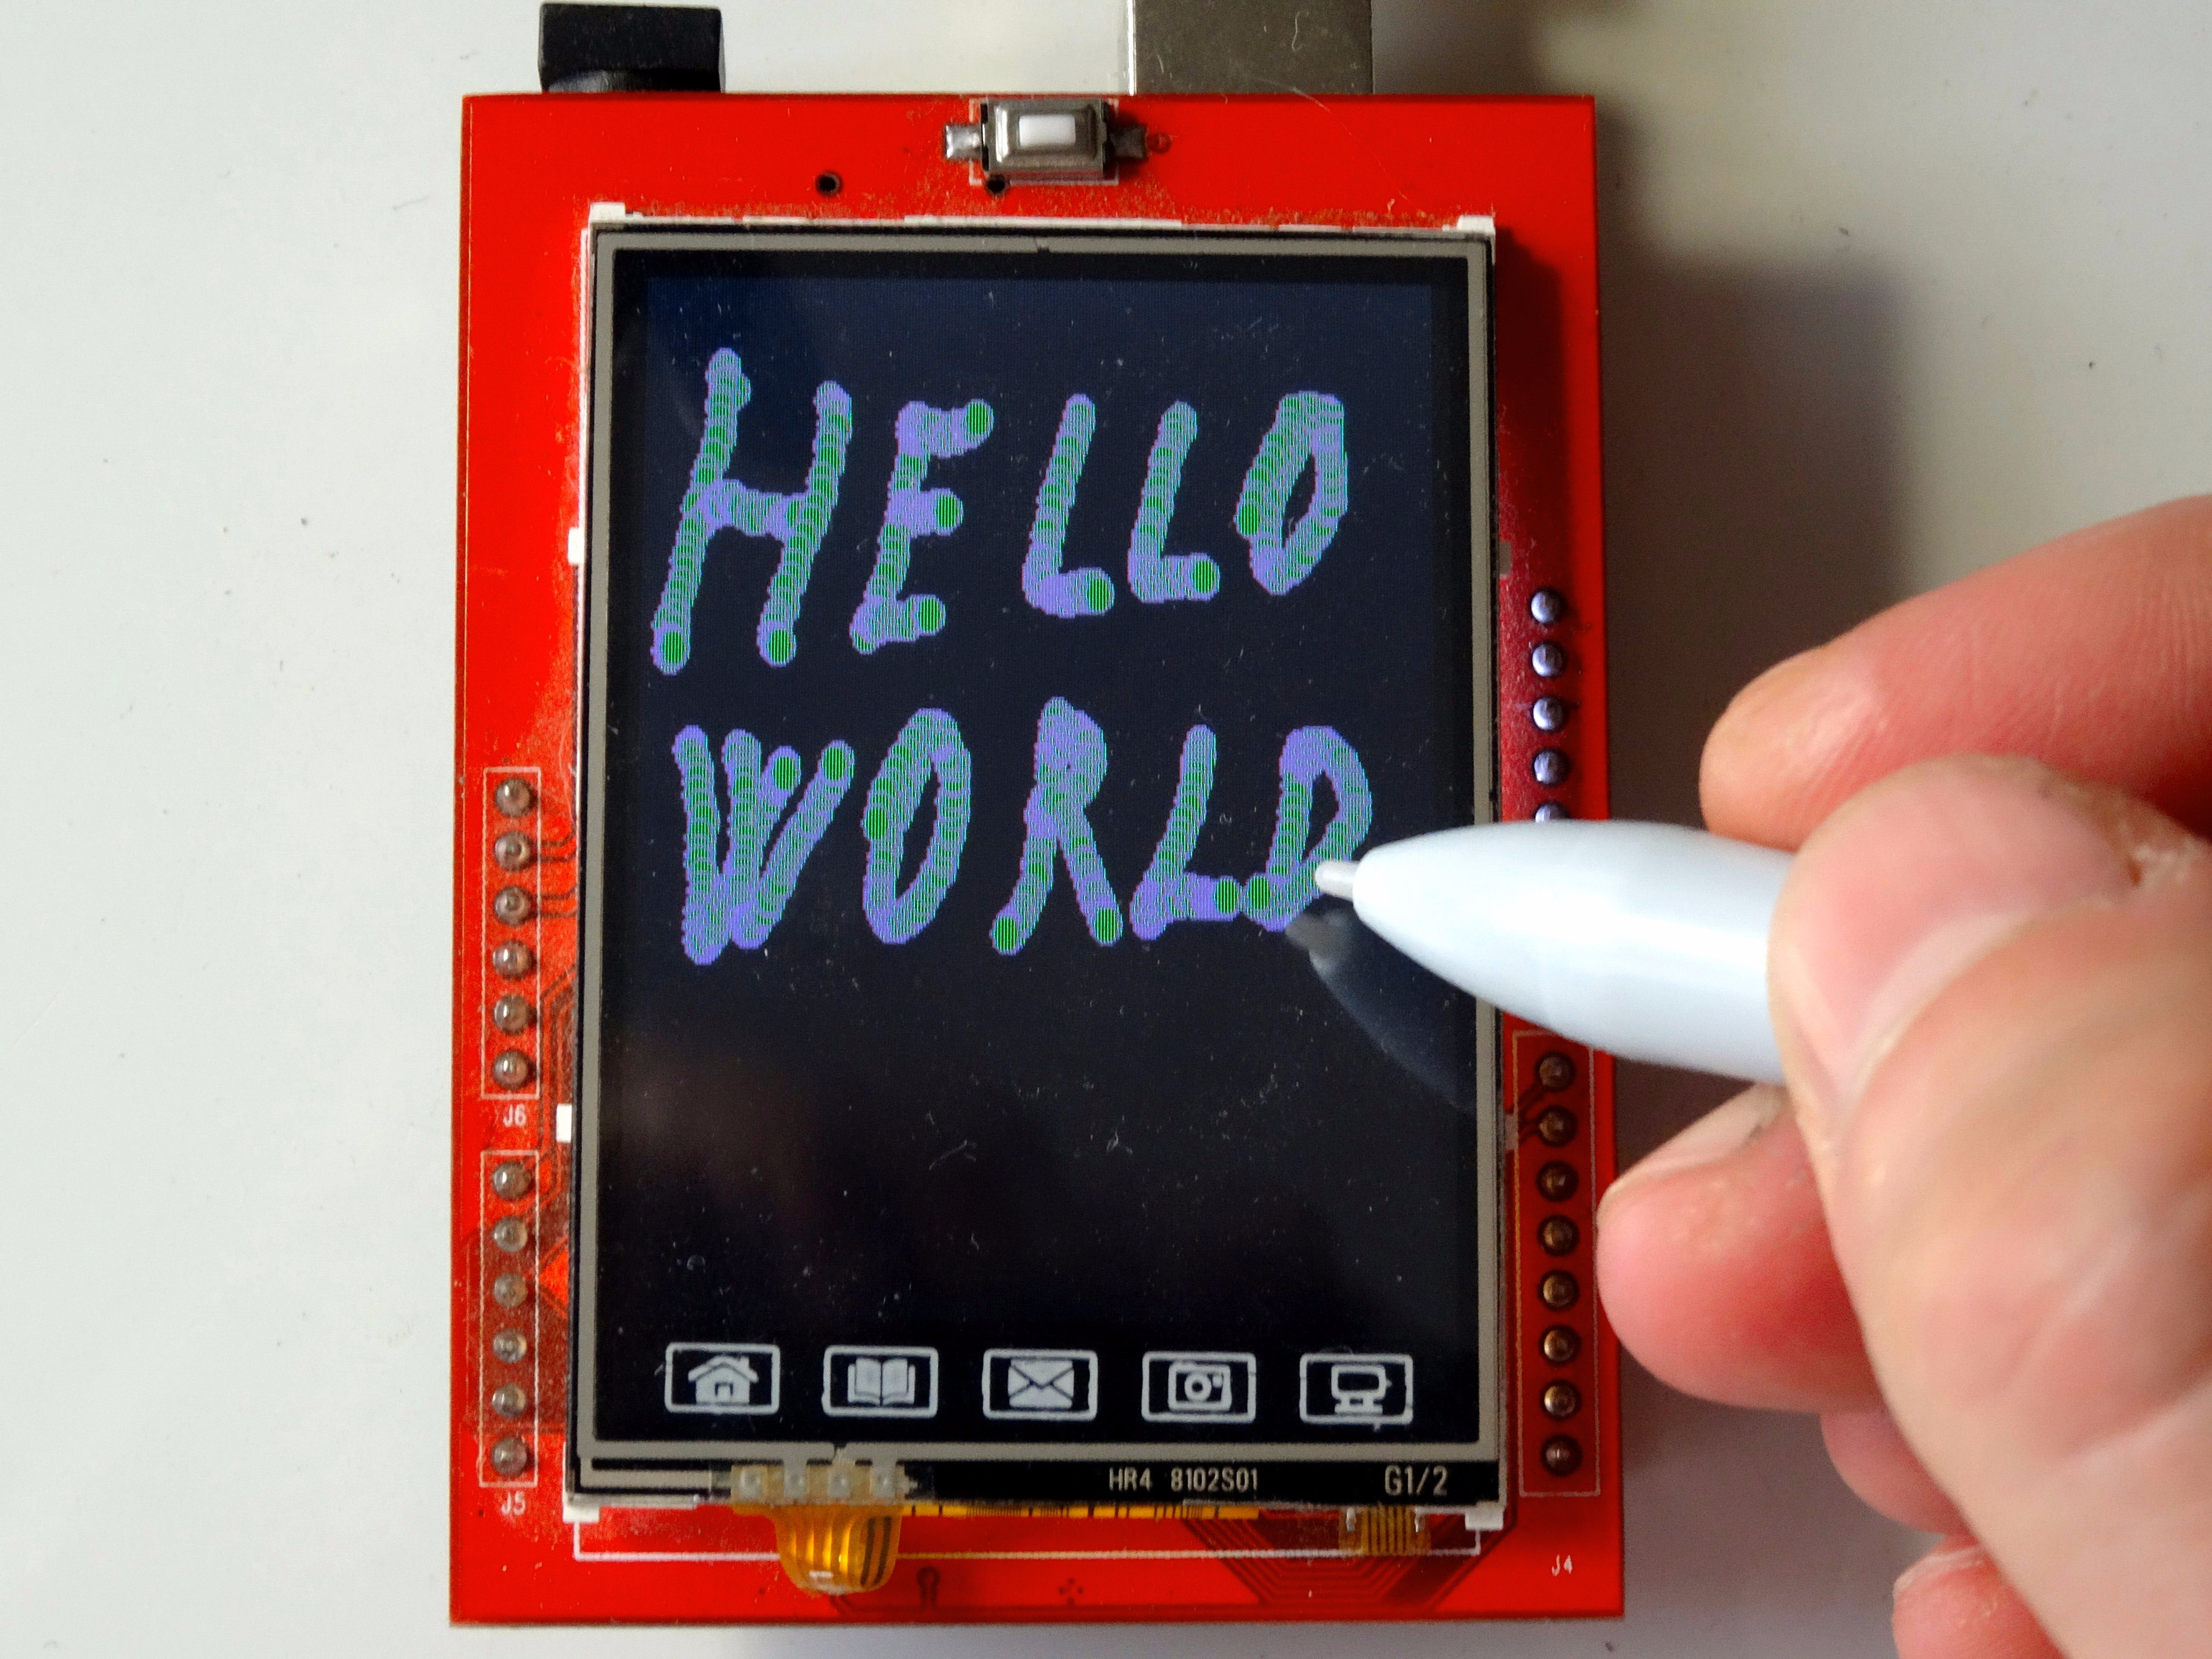 Draw on ILI9341 TFT Touchscreen Display Shield With Pen